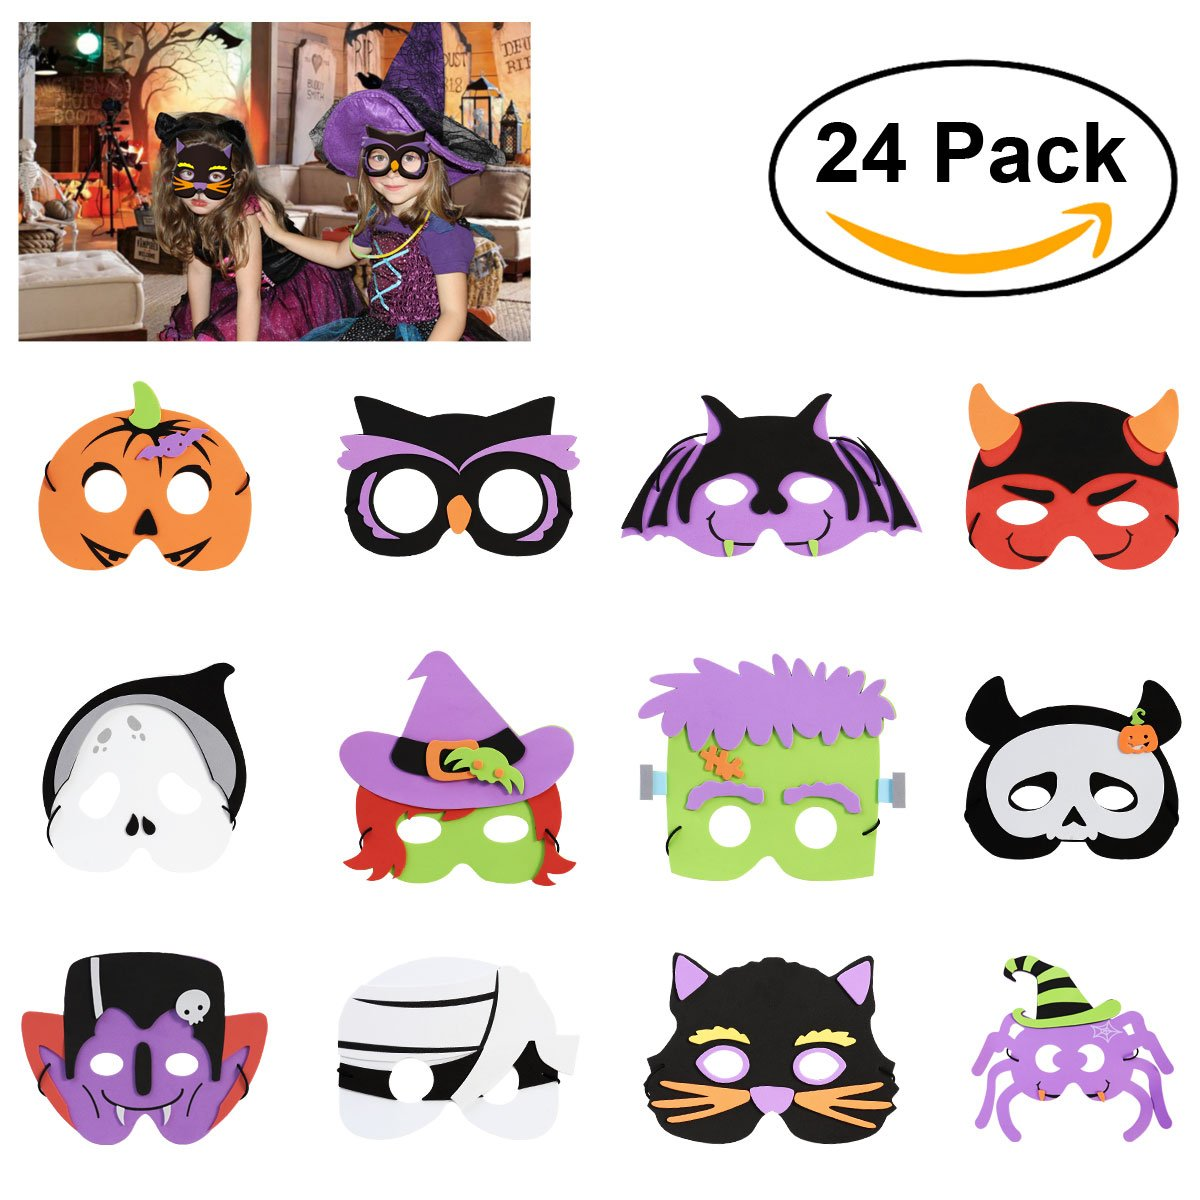 Halloween Foam Party Masks for Kids, Dress Up Costume Mask with Elastic Band, 24 Sets in 2 Packs